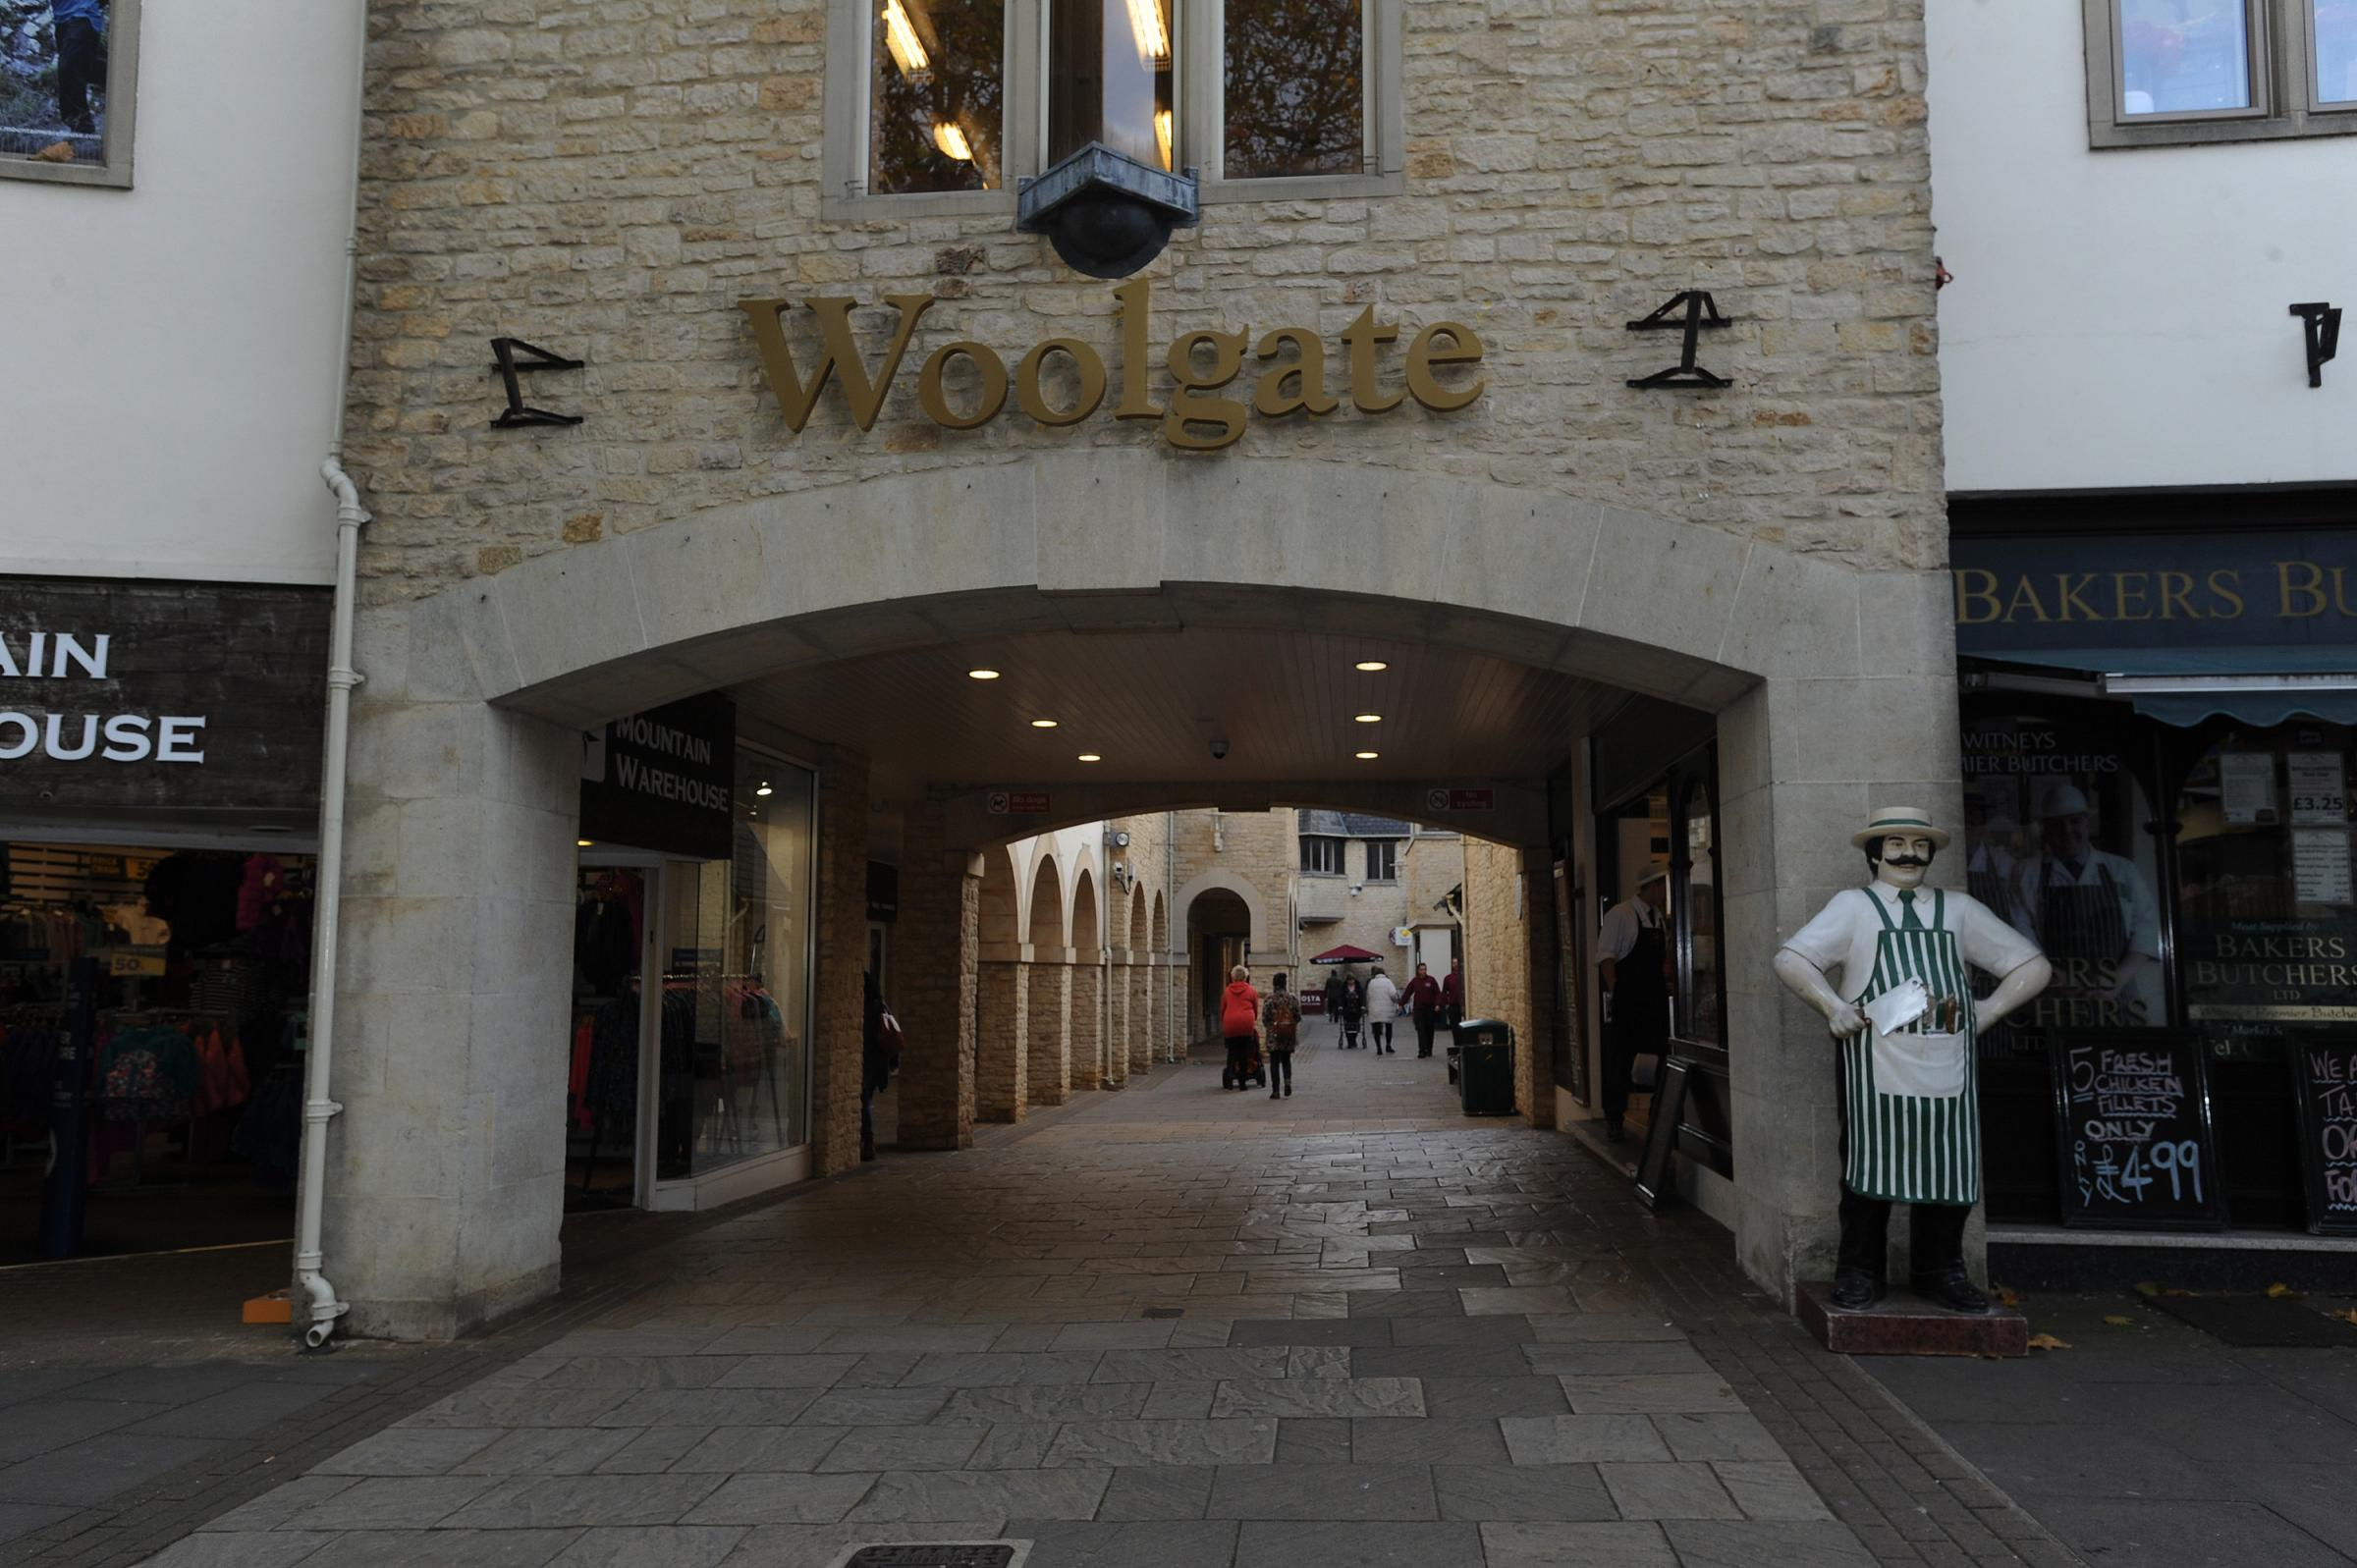 The Woolgate shopping centre